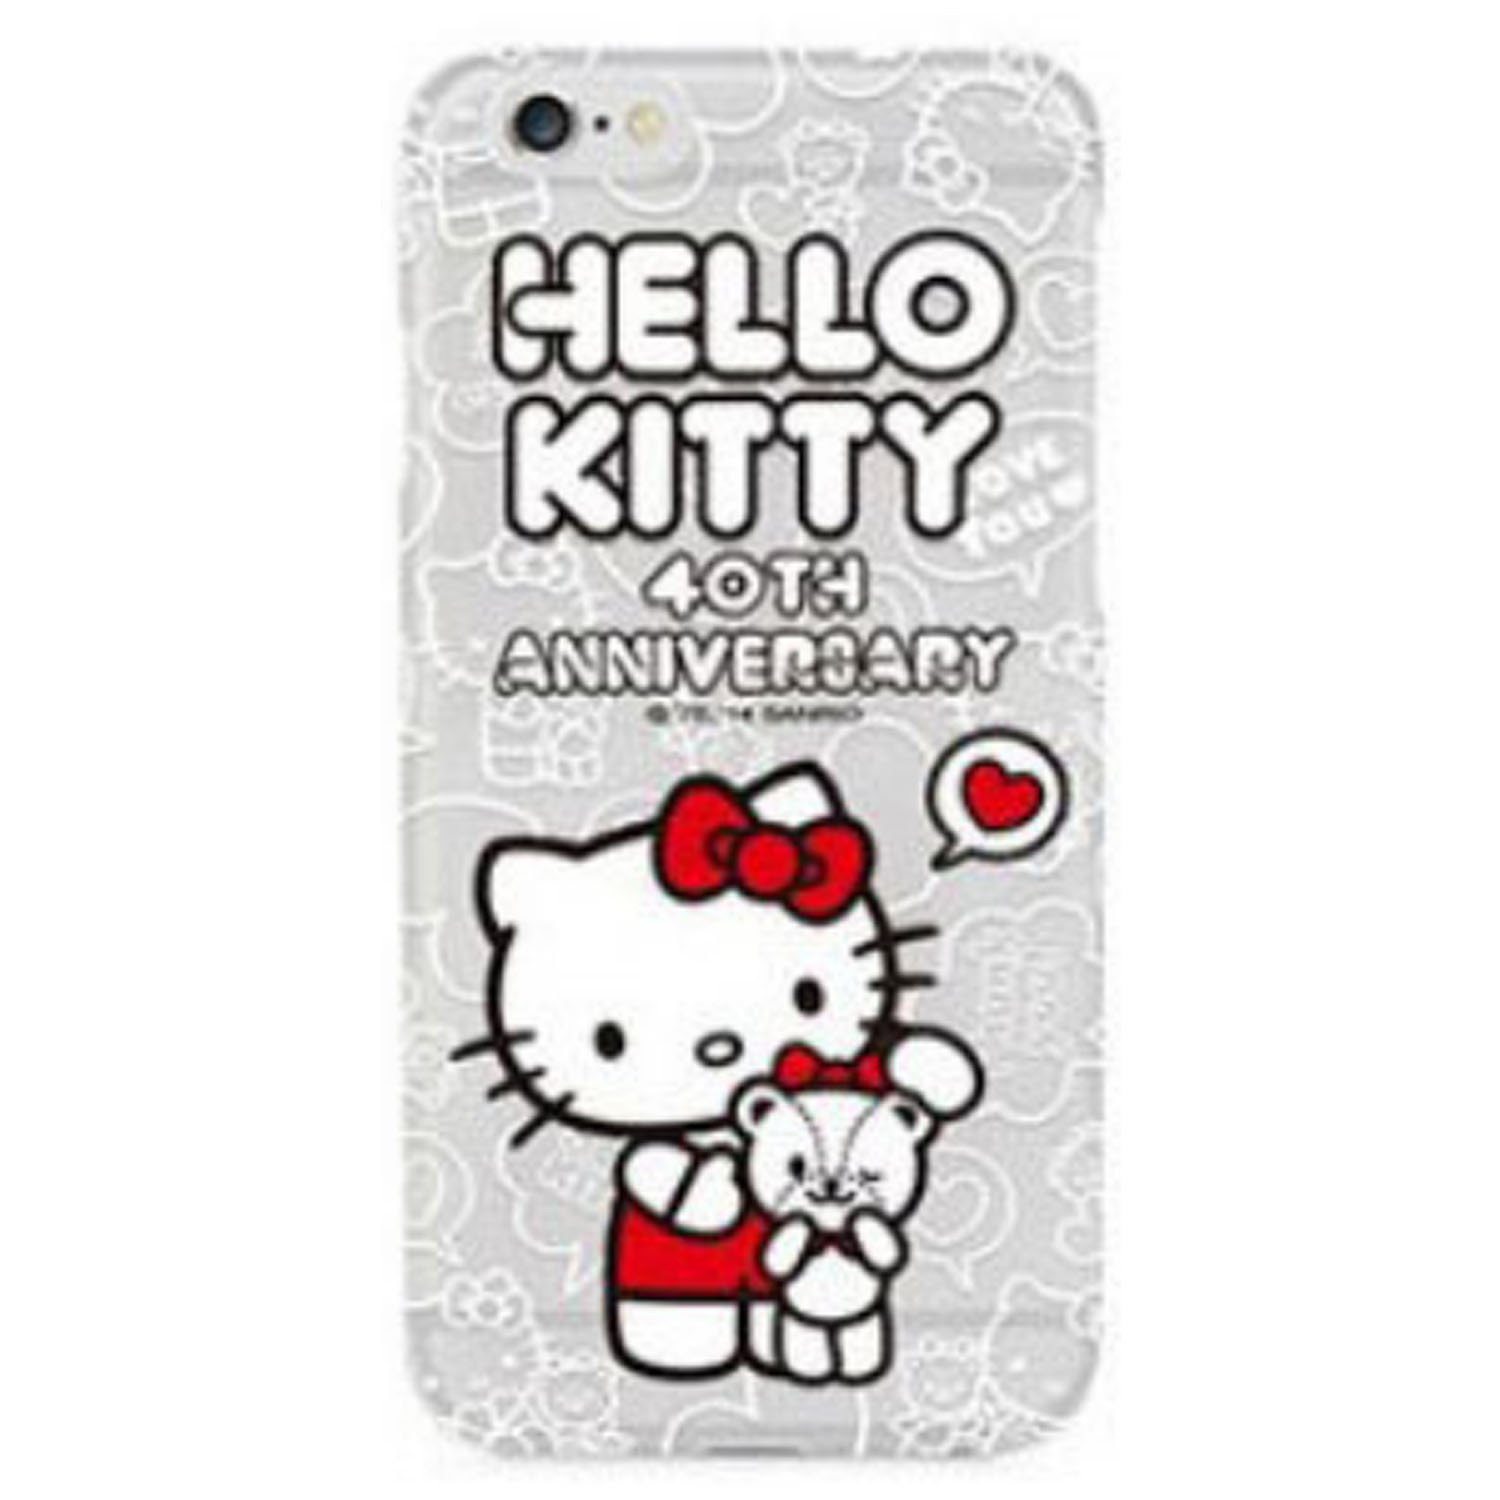 Kritzel Case für iPhone 6 Plus / 6s Plus - Hello Kitty #7